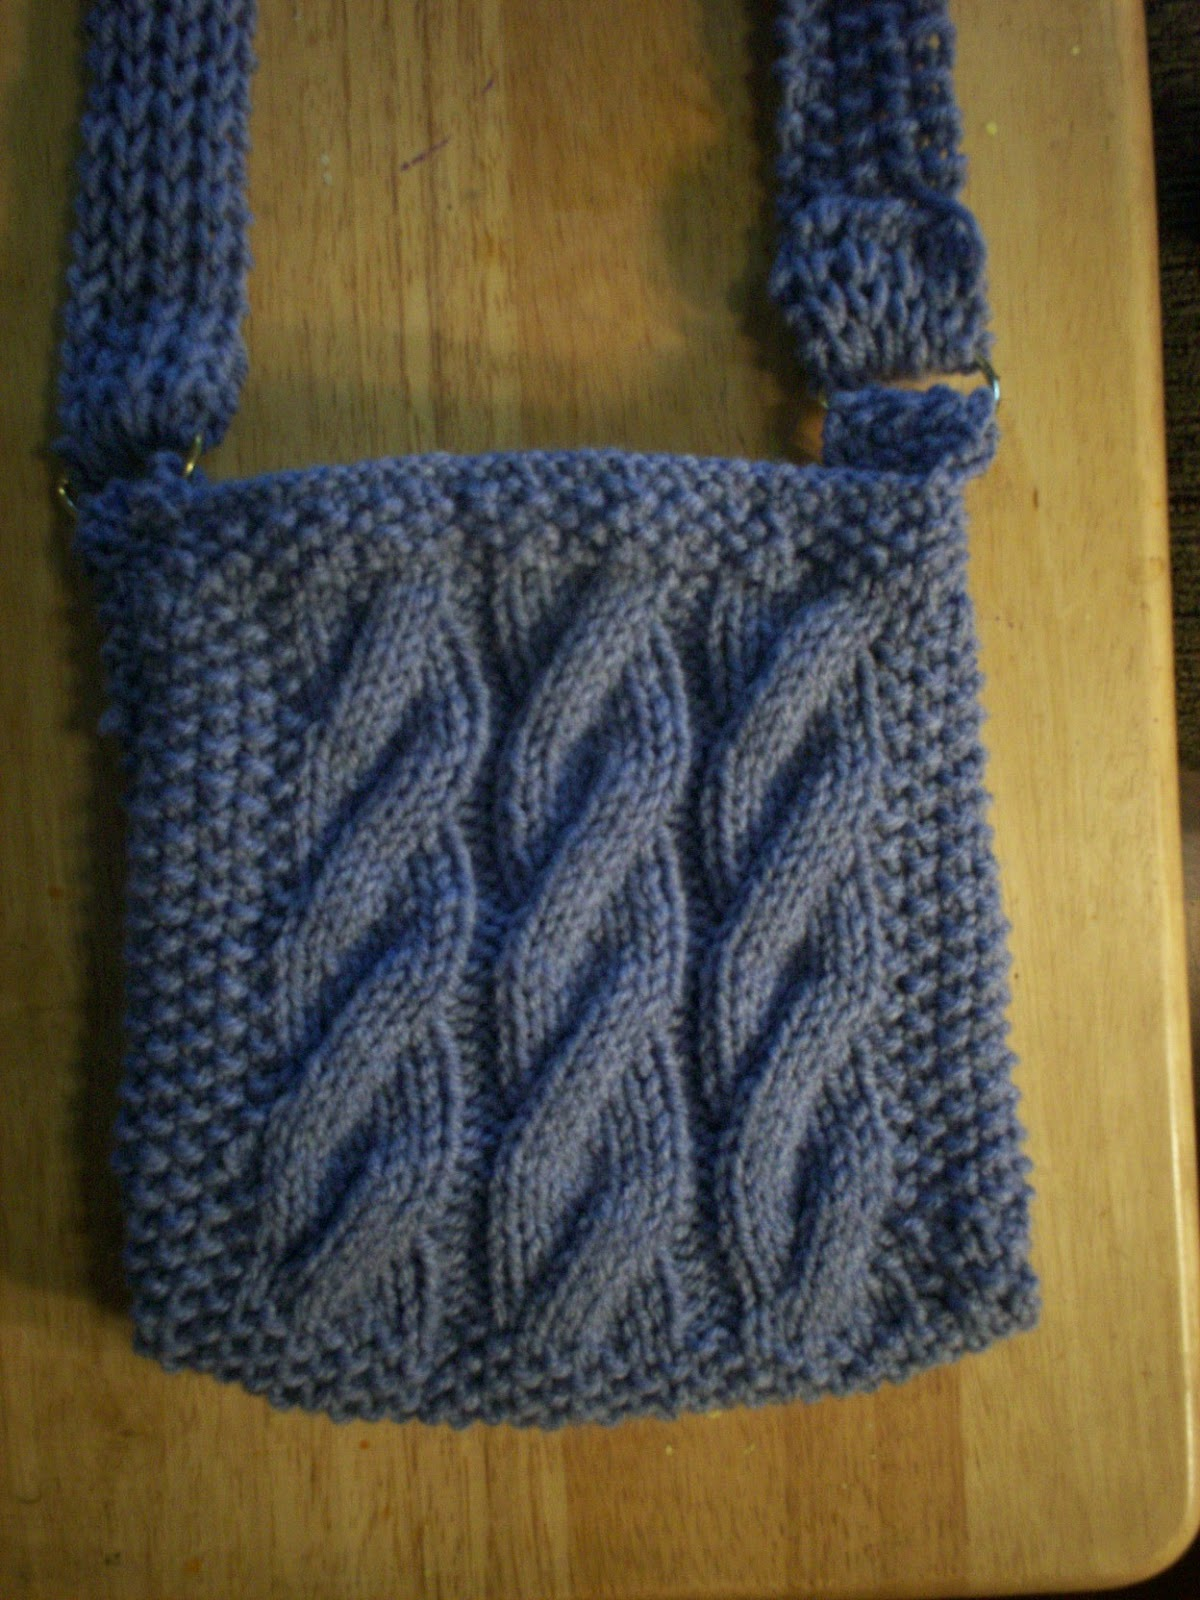 Knitting Patterns For Advanced Beginner : Knitting Patterns for the beginner or the advanced knitter: Heathers Cab...